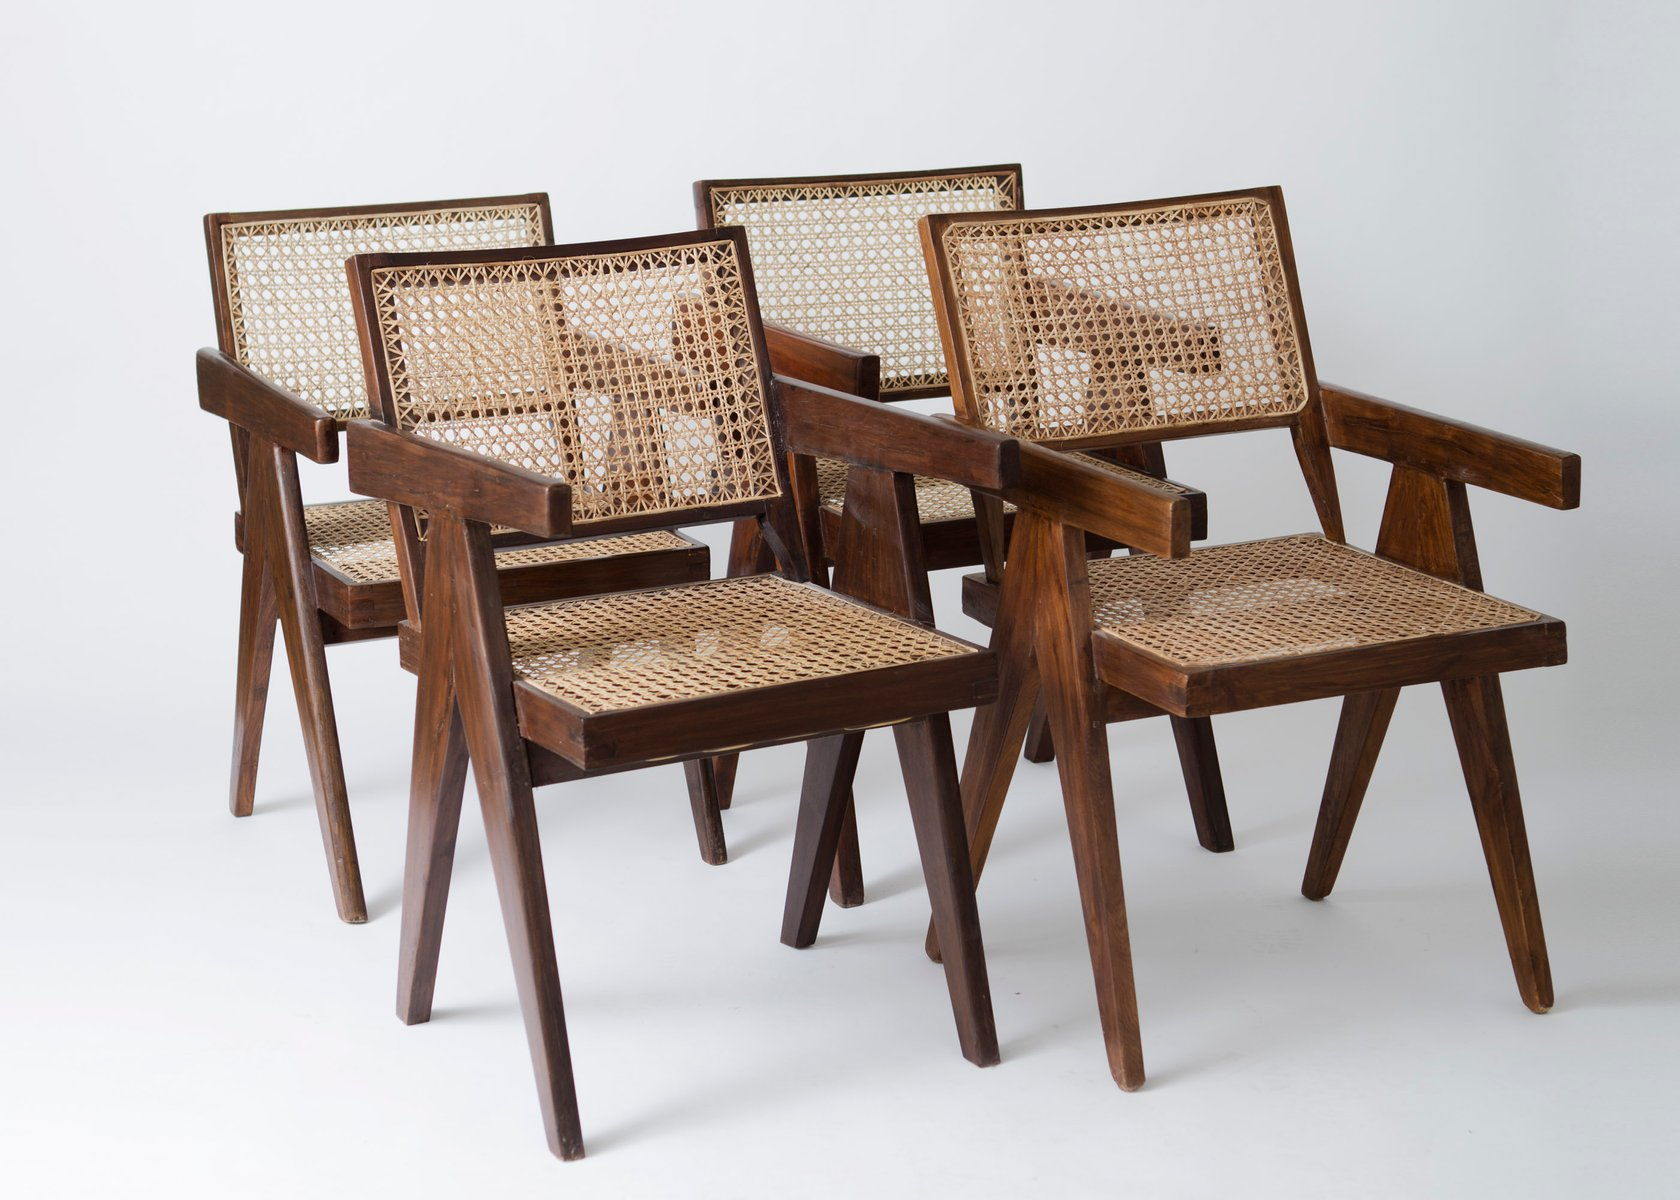 fice Cane Armchairs by Pierre Jeanneret 1950s Set of 4 for